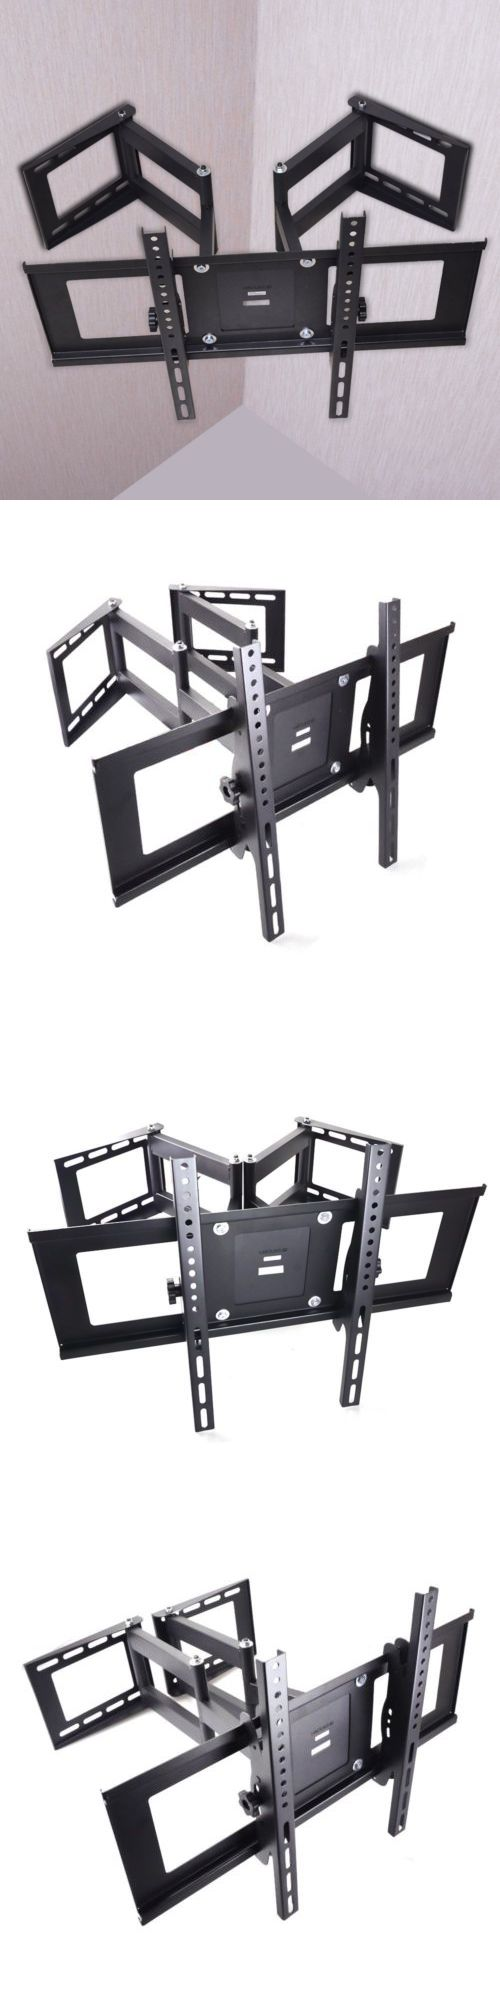 TV Mounts and Brackets: Corner Full Motion Dual Arm Tv Wall Bracket 24 27 30 32 36 42 46 50 55 57 60 70 -> BUY IT NOW ONLY: $40.95 on eBay!